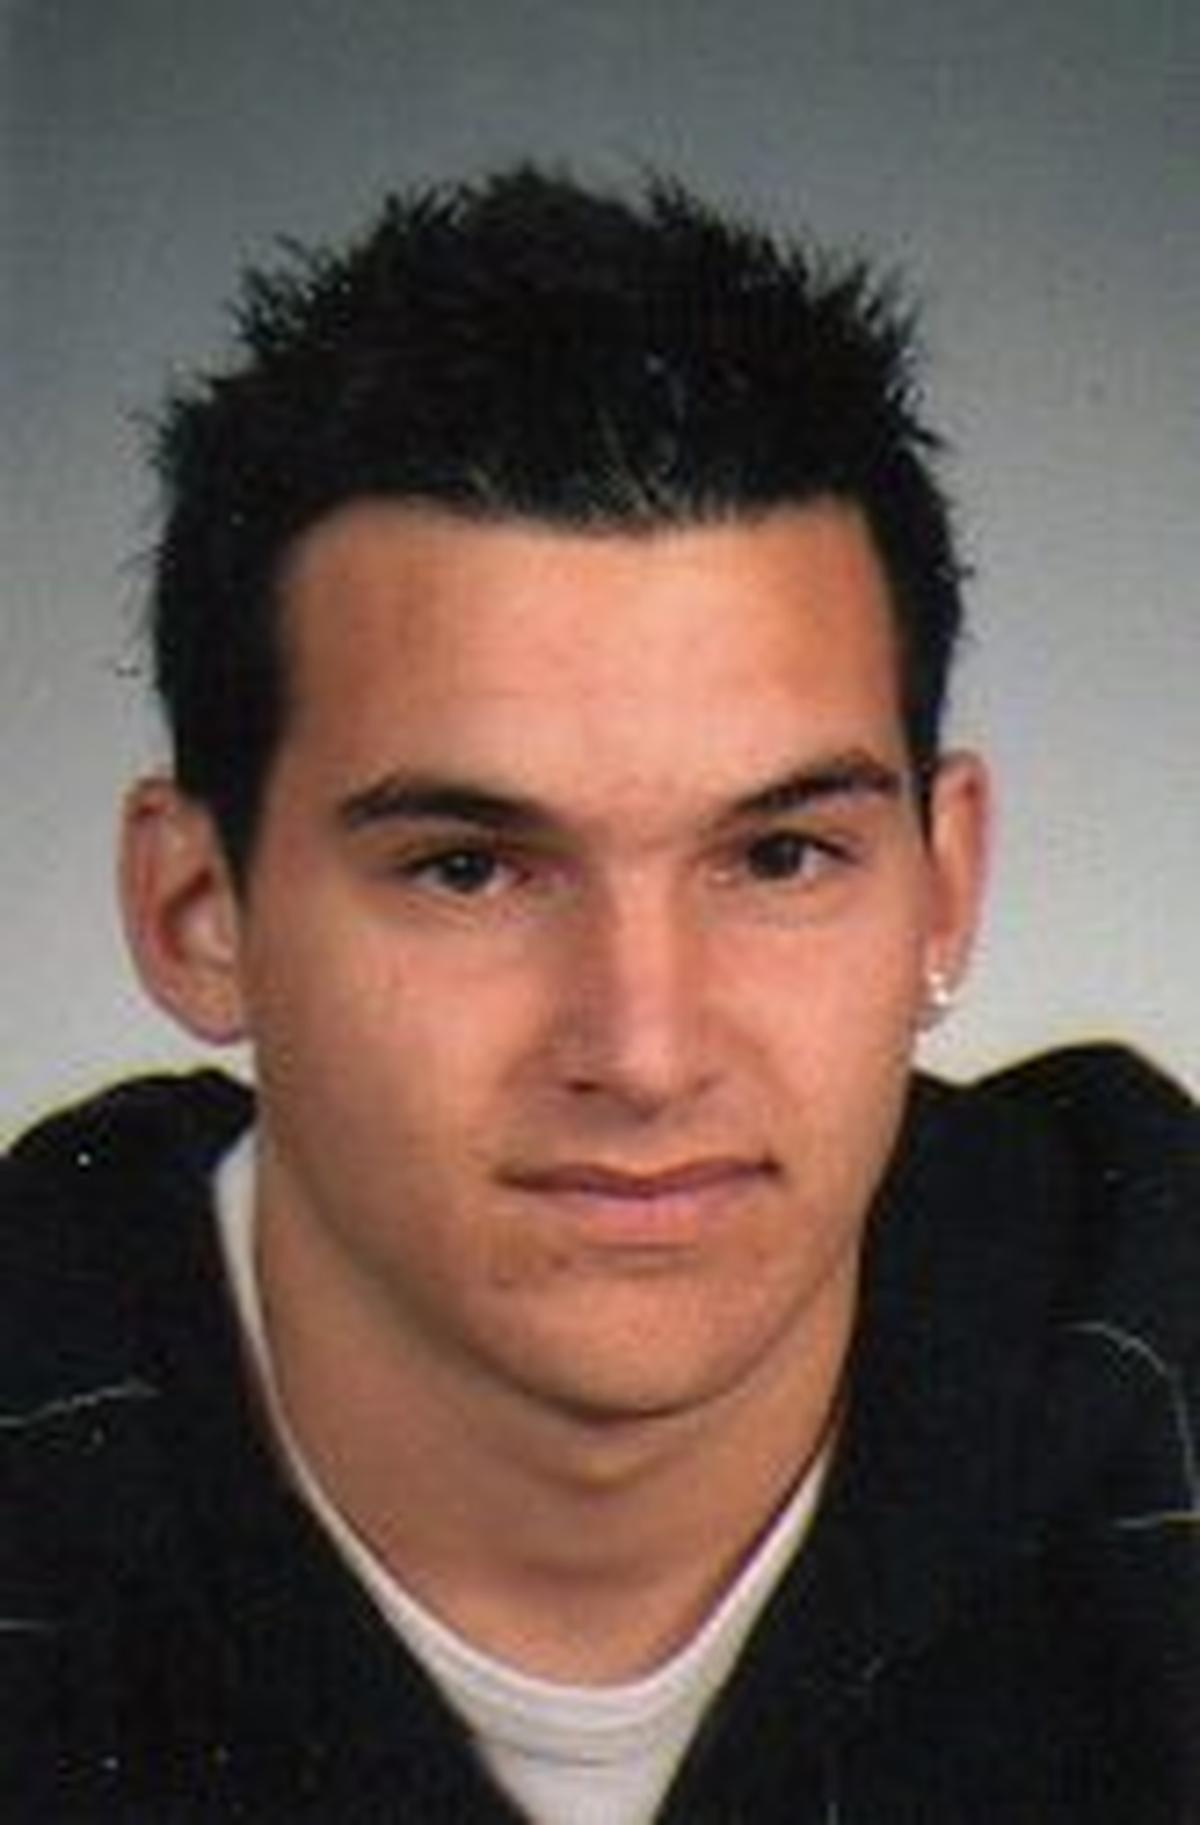 <b>Baptiste BROCHARD</b> - baptiste-brochard-2__mzv960